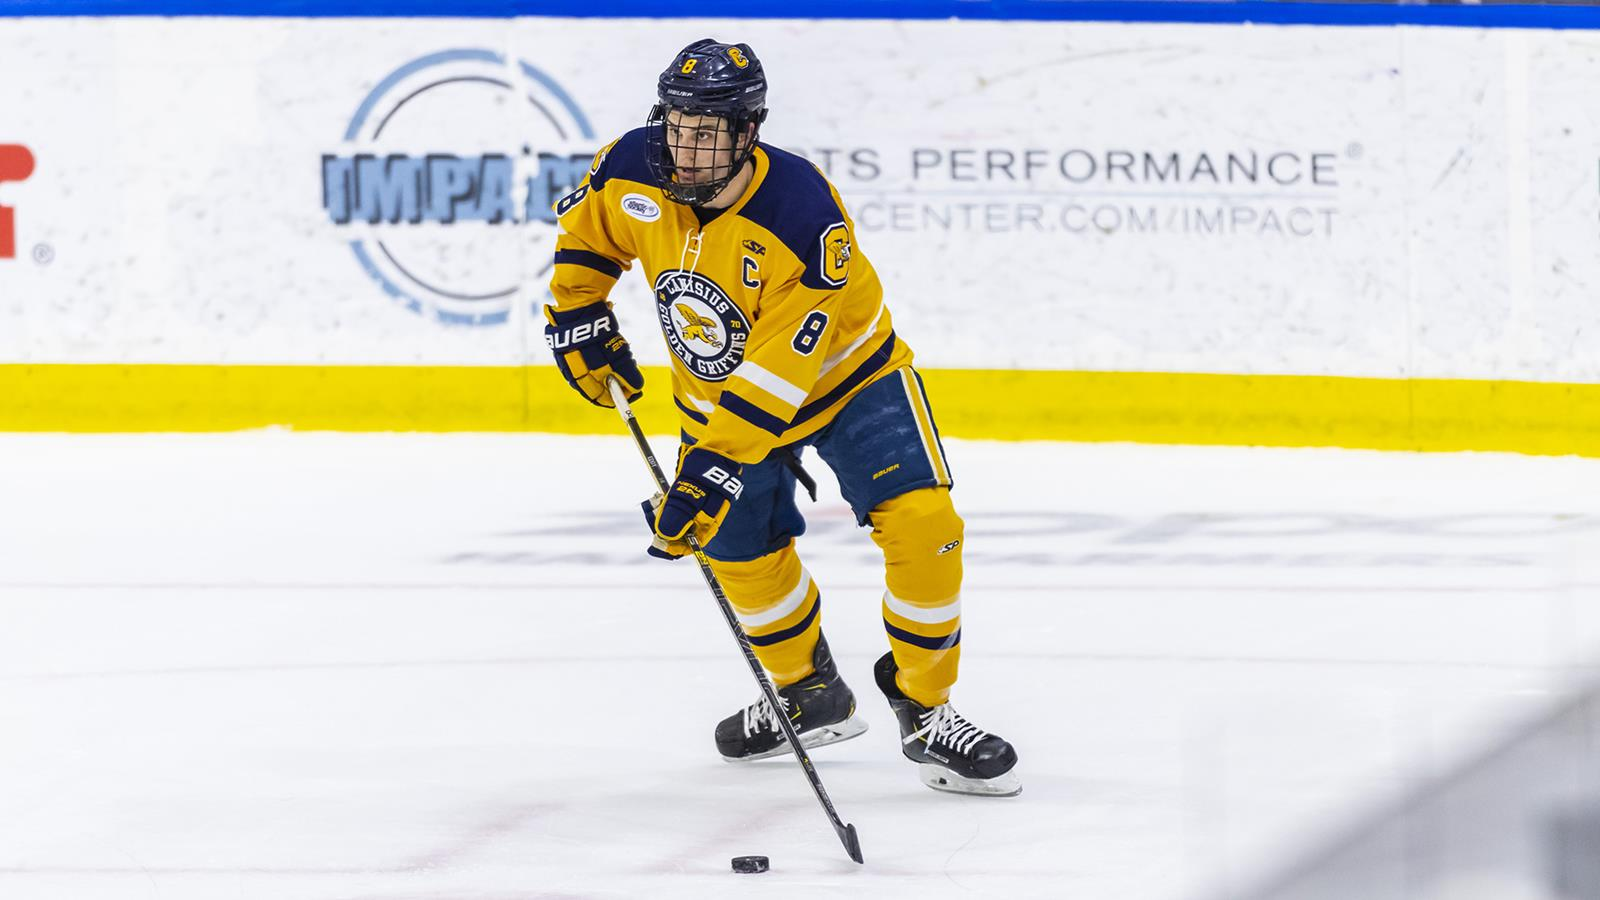 Ian Edmondson - Ice Hockey - Canisius College Athletics